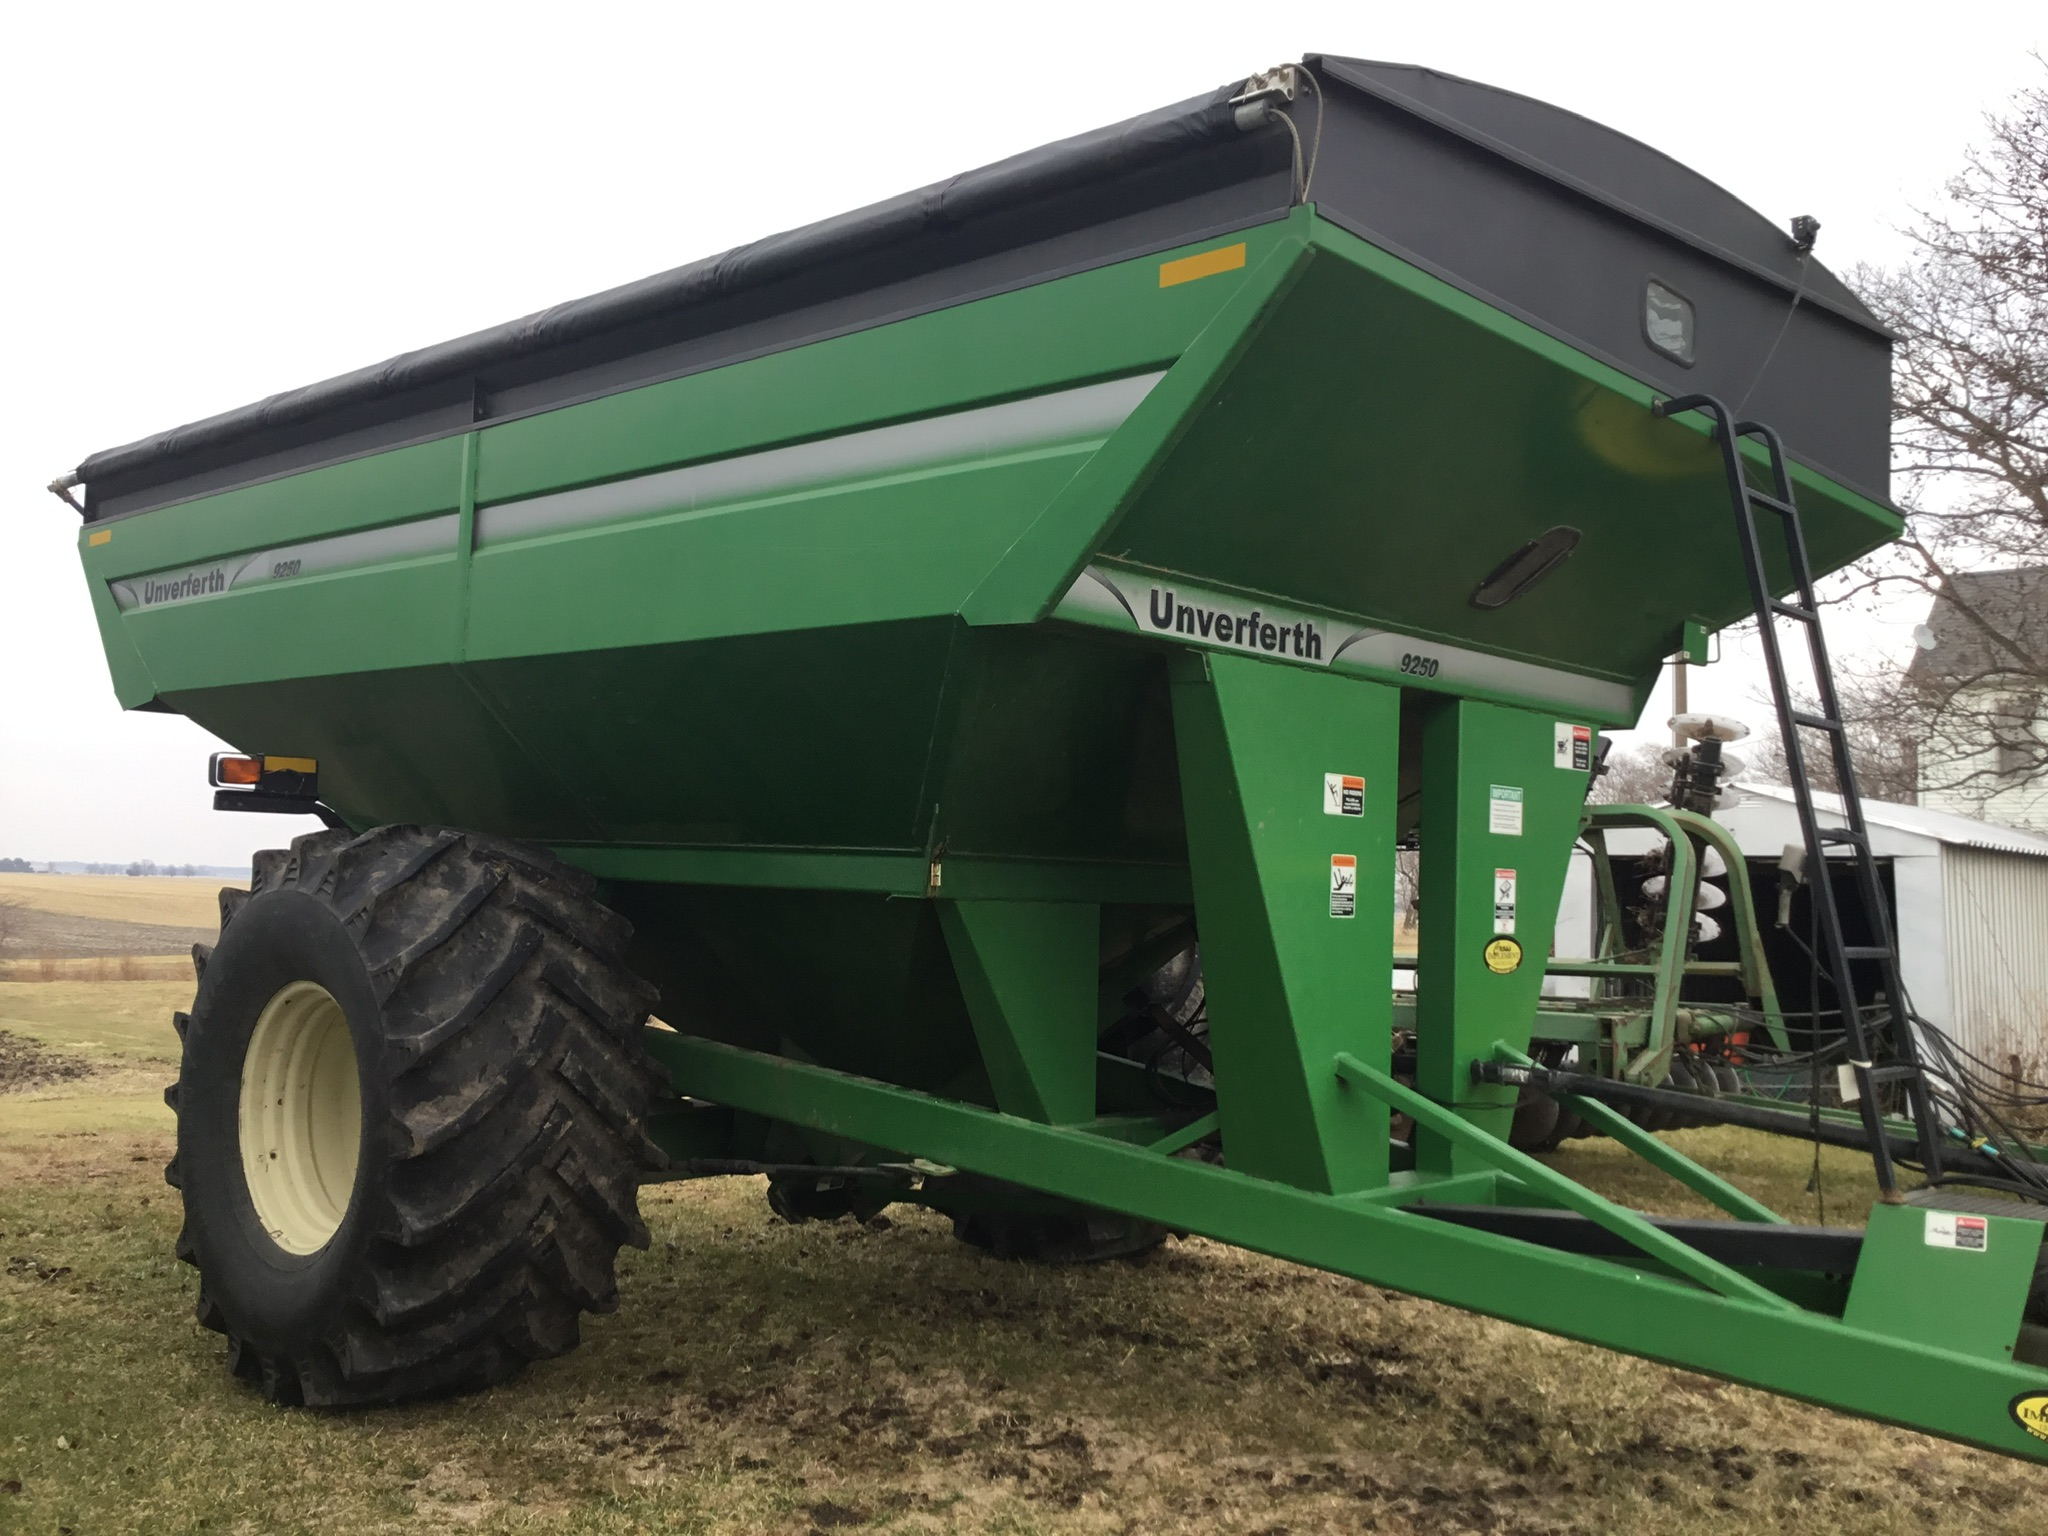 2009 Unverferth 9250 1,000 Bu. Auger Cart, Hydraulic Spout, 3 Cameras, Roll Tarp, New Augers, 900- - Image 5 of 15